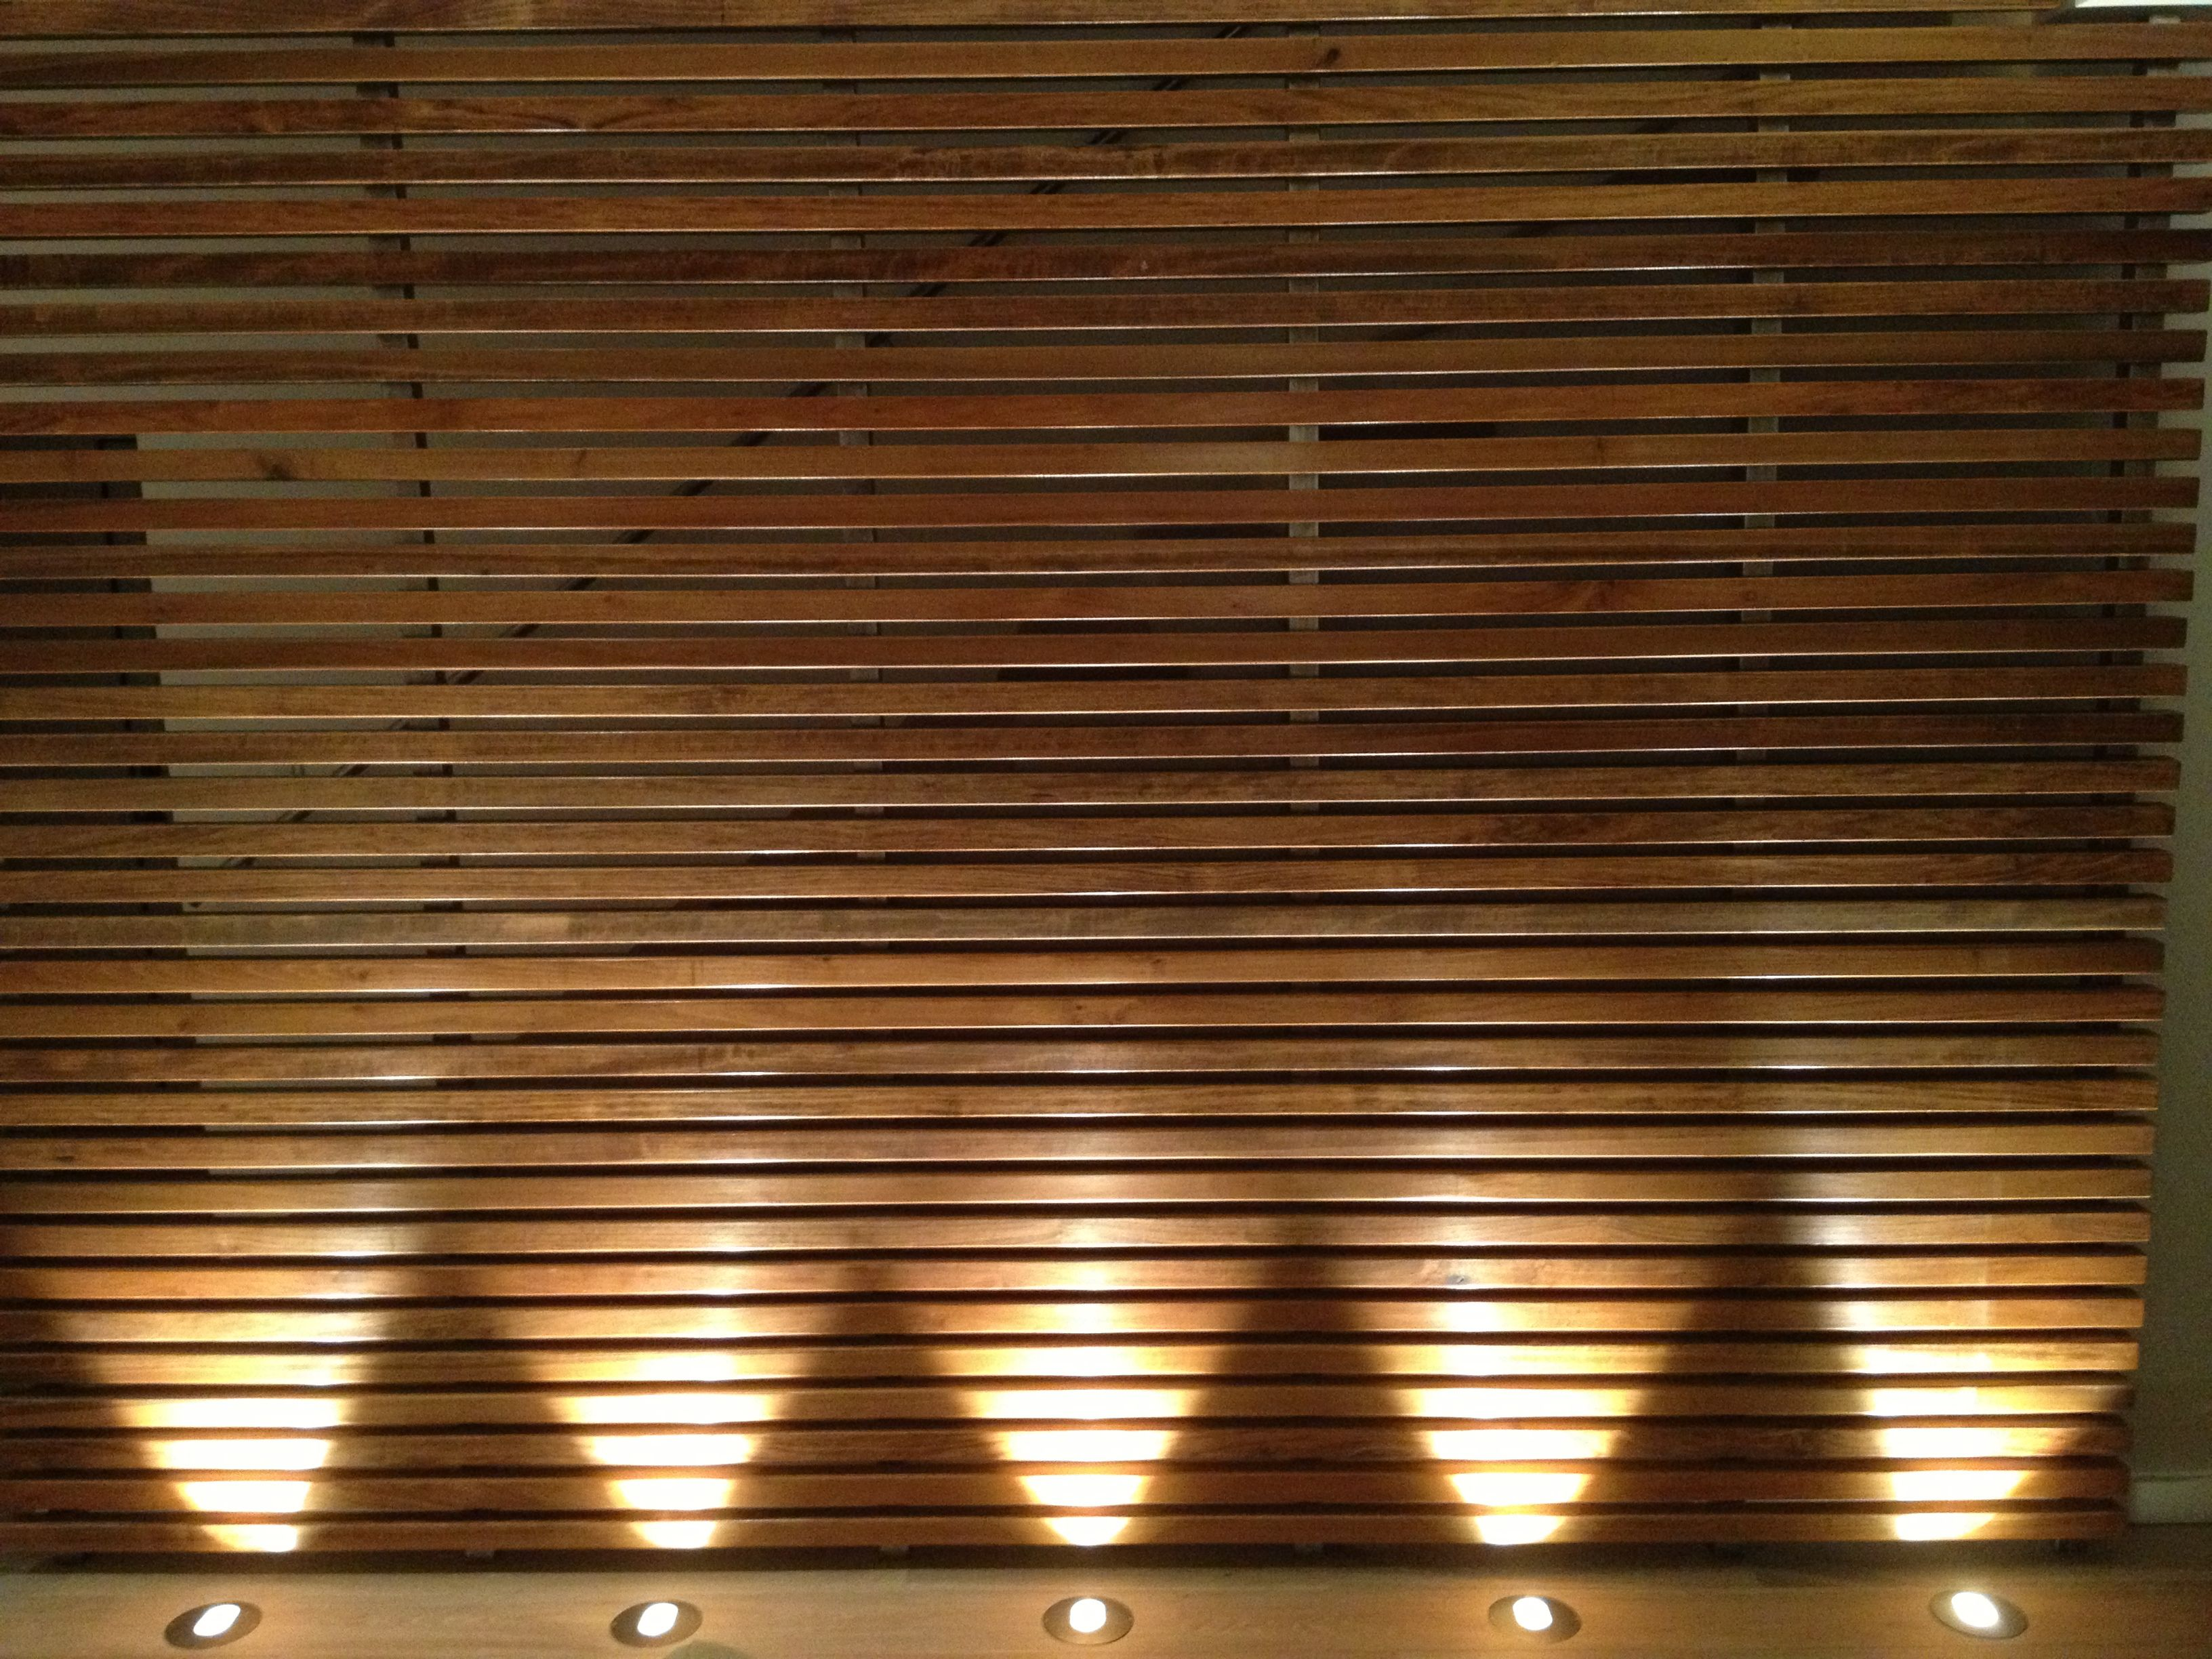 Wood Feature Wall Ideas wood feature wall | architectural lighting | pinterest | woods